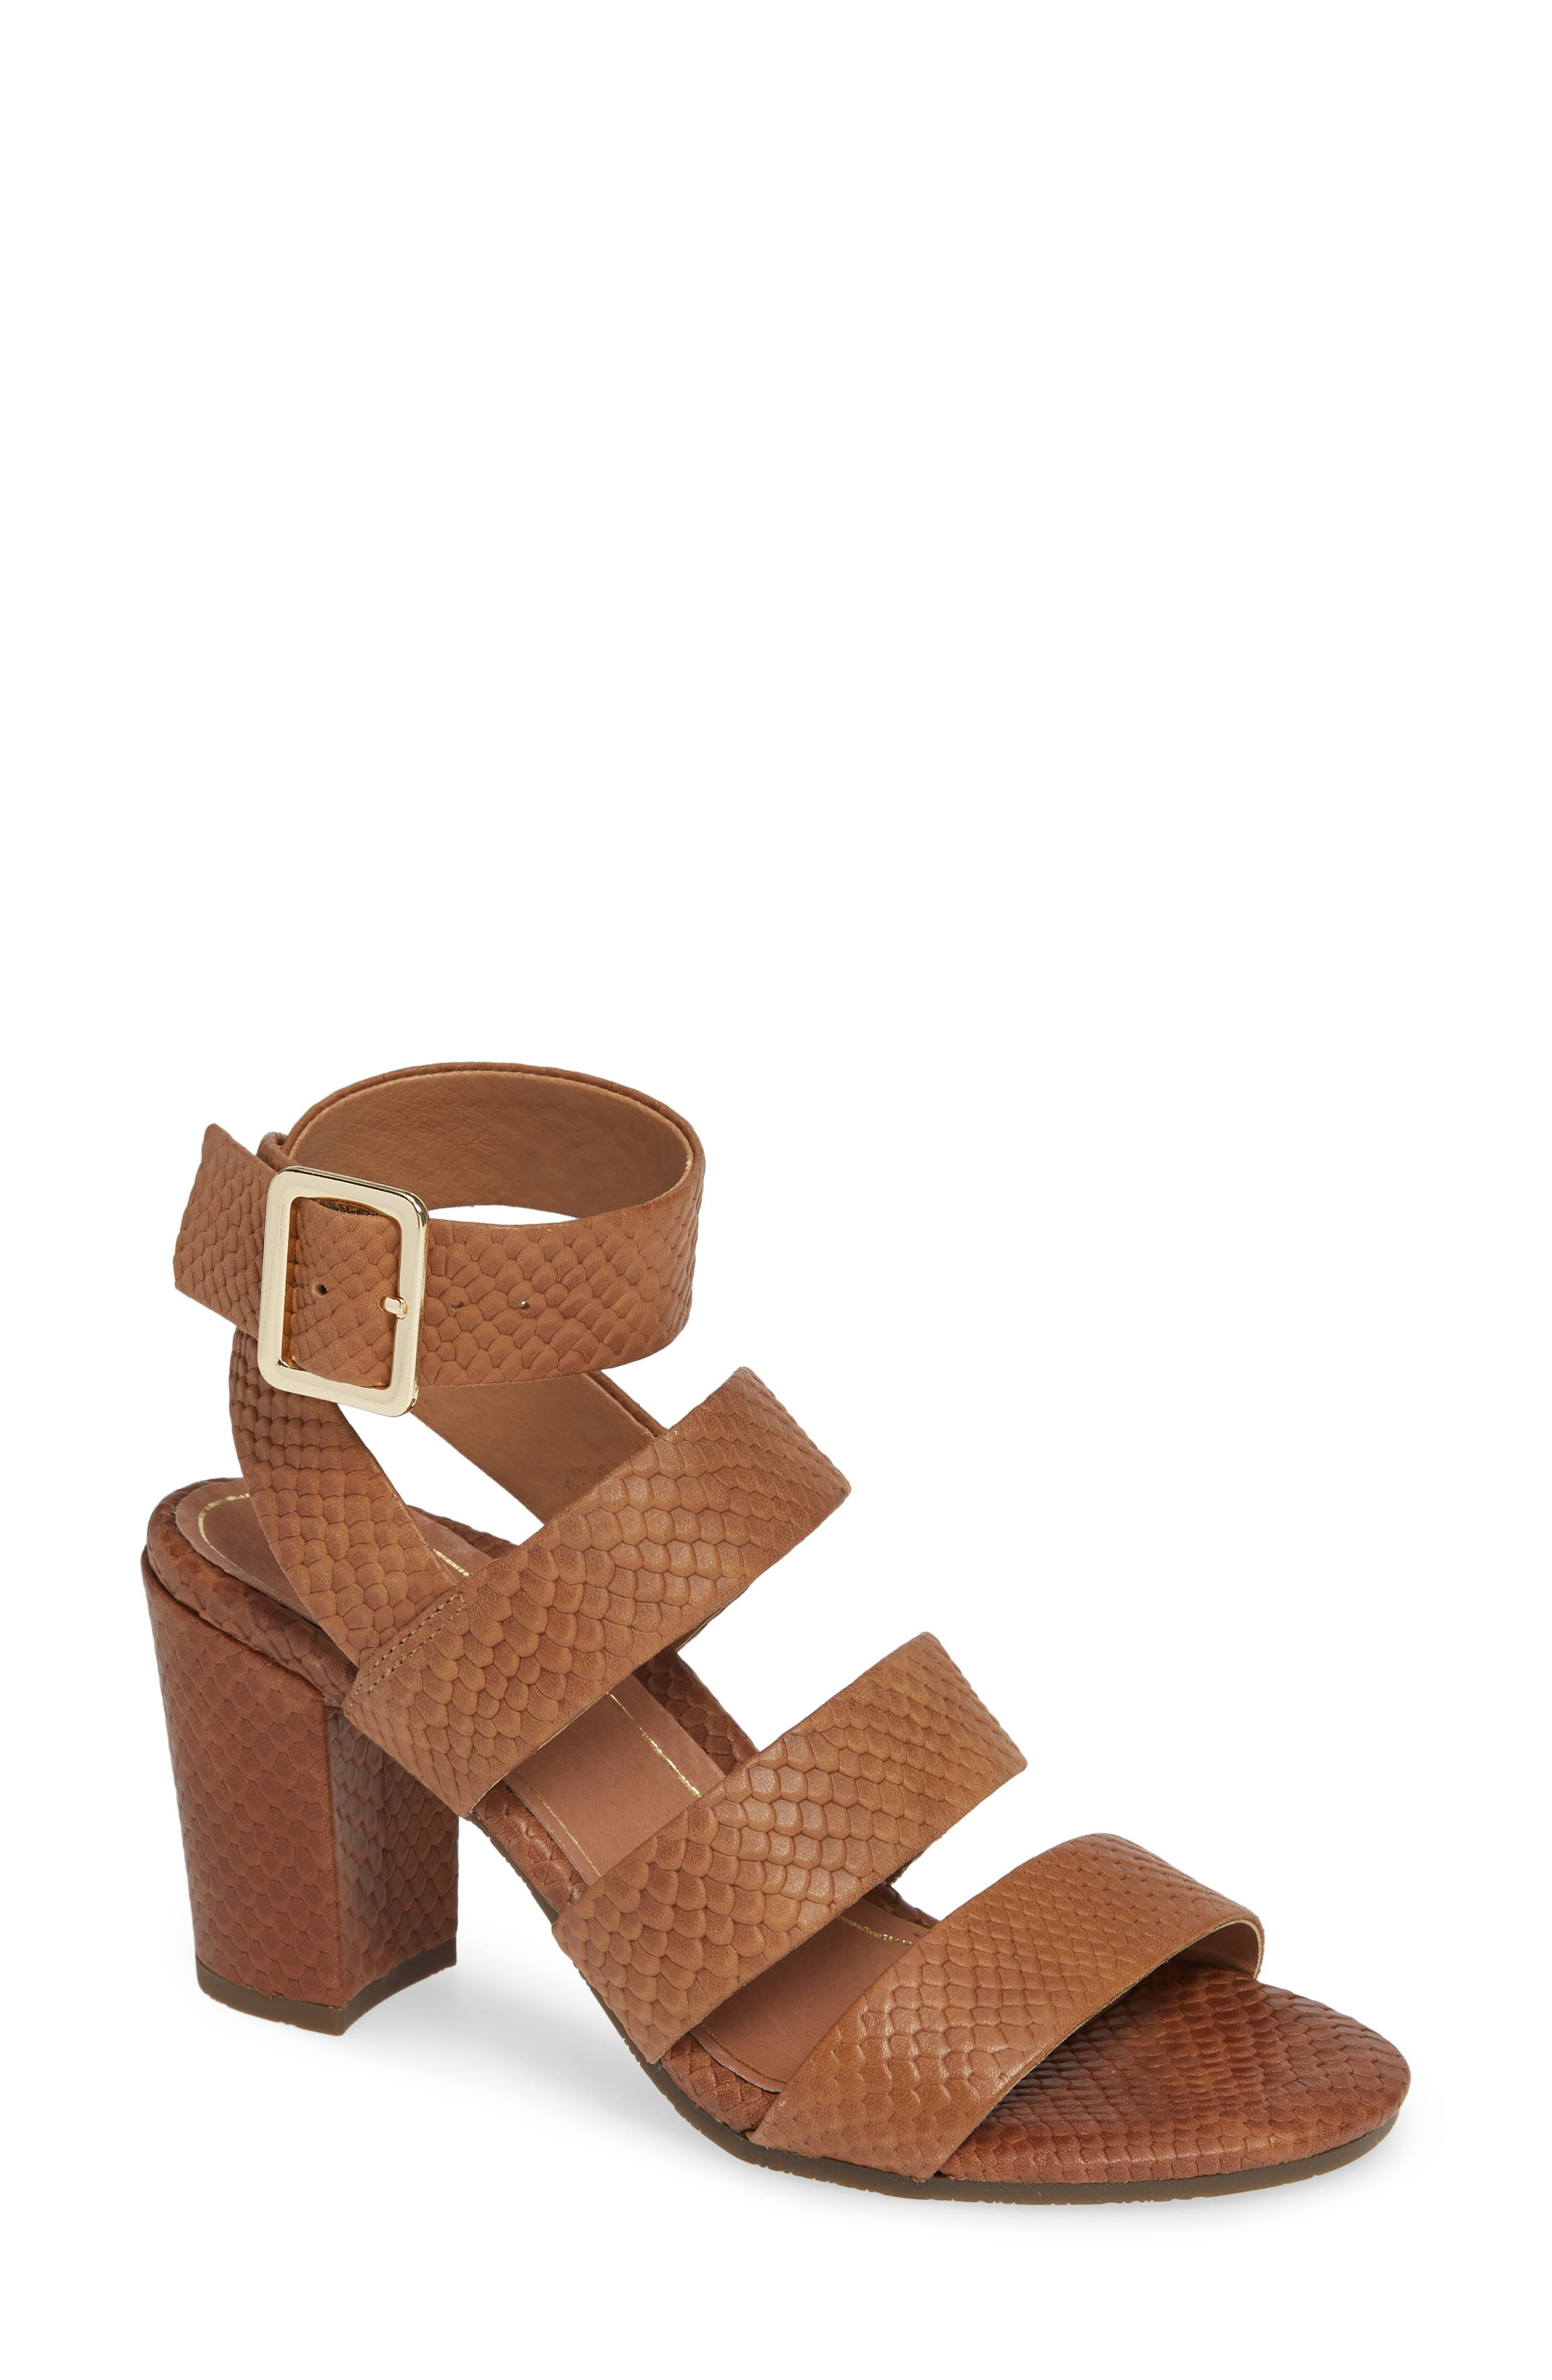 Blaire Block Heel Sandal,                             Main thumbnail 1, color,                             BROWN SNAKE EMBOSSED LEATHER